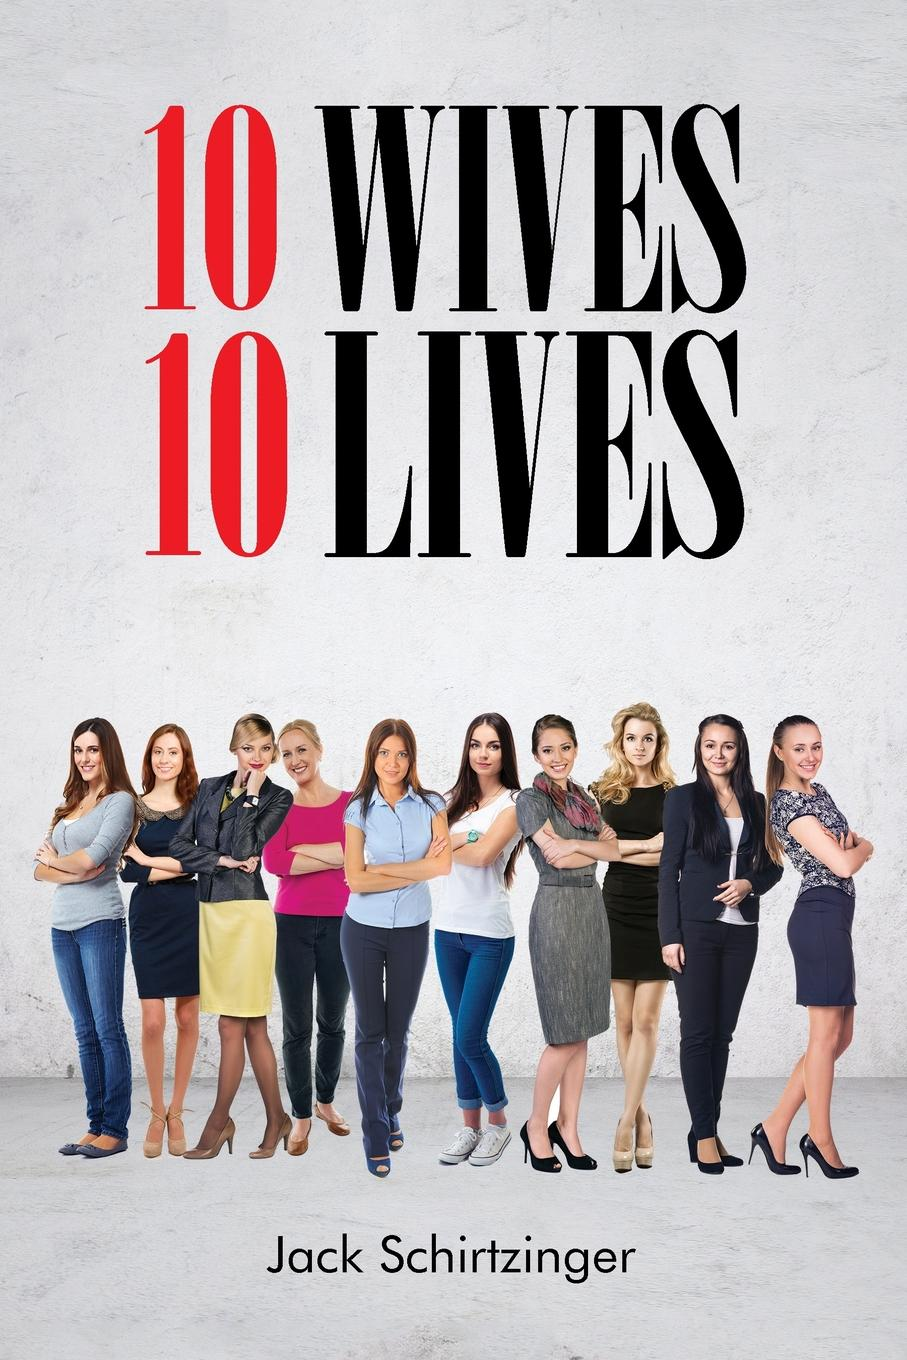 Jack Schirtzinger 10 WIVES 10 LIVES the wives military the military wives wherever you are – louise's story